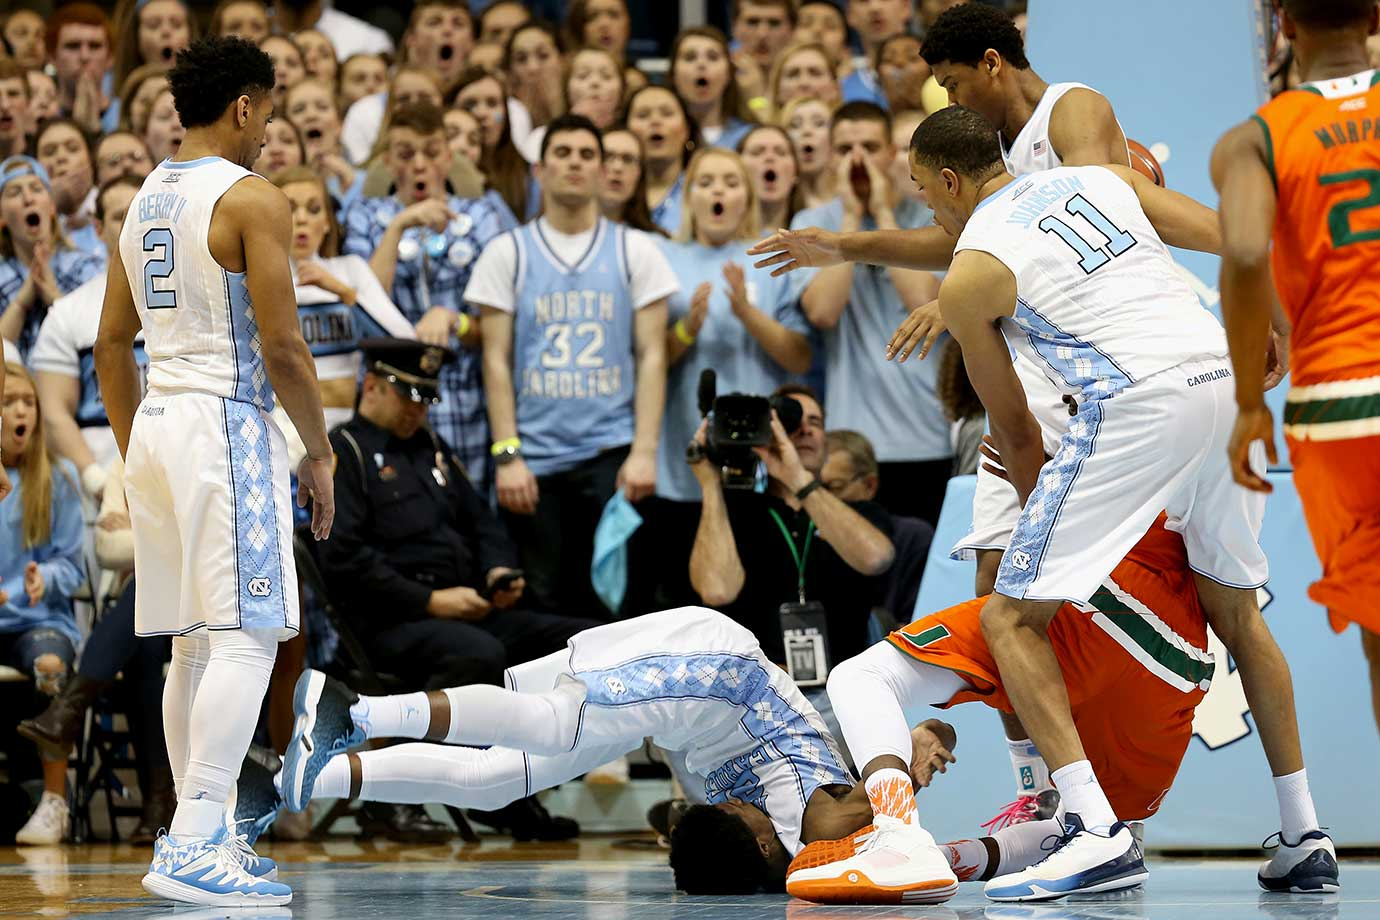 Kenny Williams flips over, much to the astonishment of onlookers, but not the security guard, in an afternoon game between Carolina and Miami.